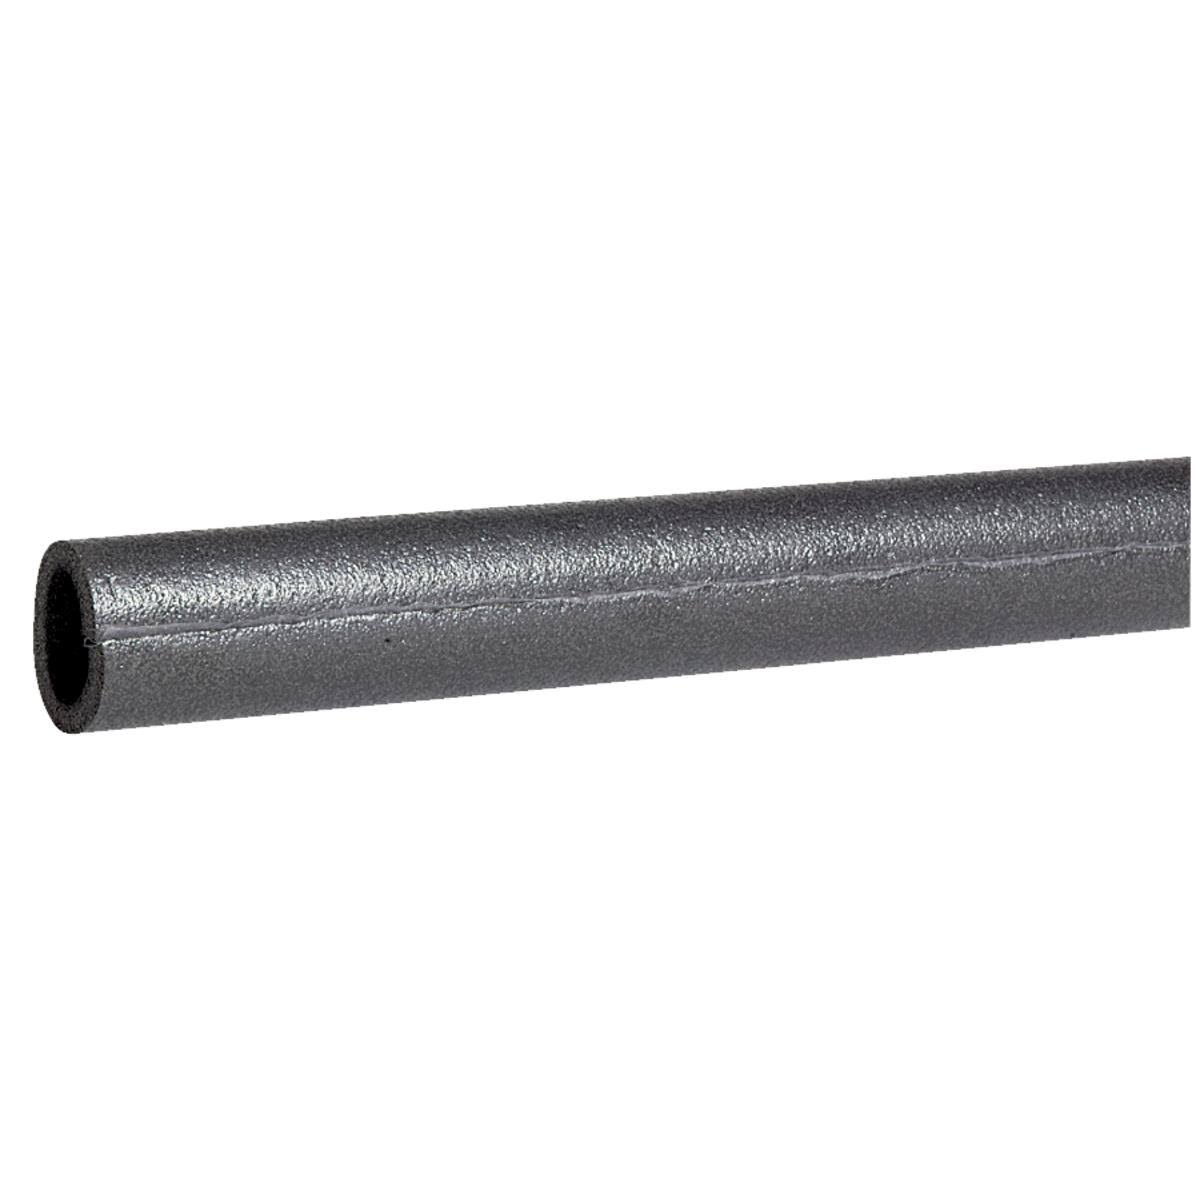 Tundra 1/2 in. Wall 6 ft. Self-Sealing Pipe Insulation Wrap Charcoal (Pack of 30)